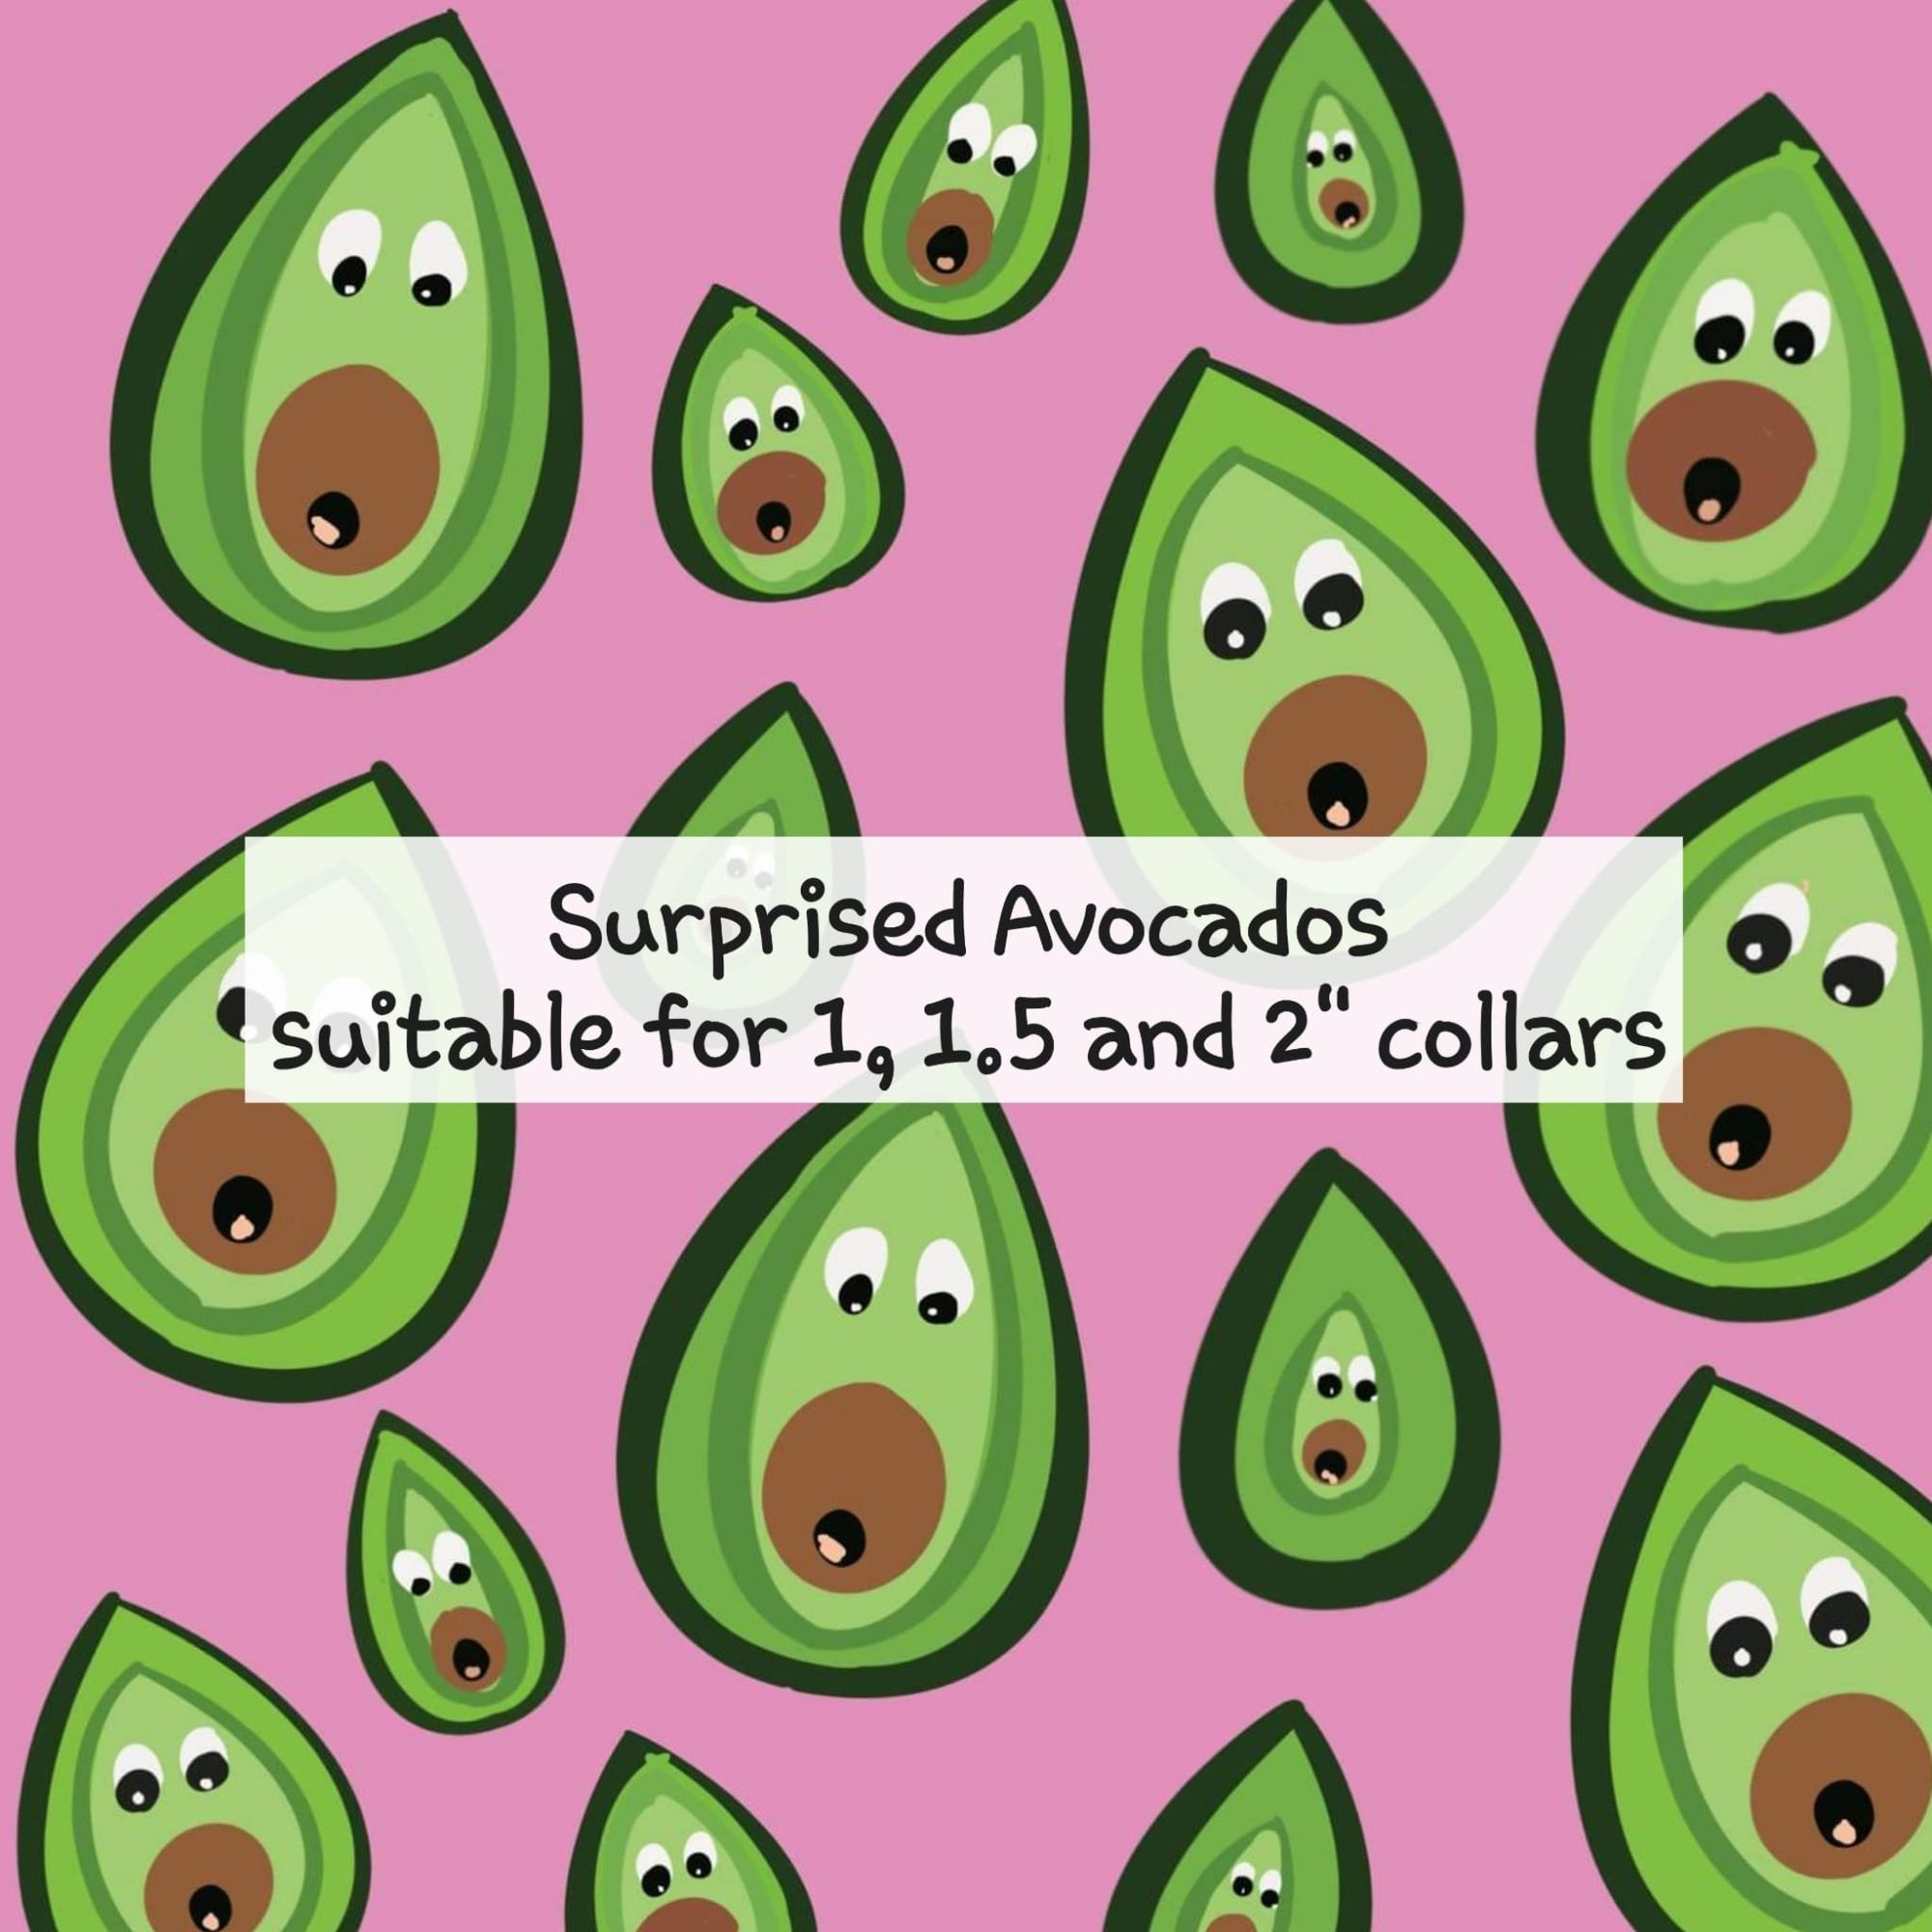 Surprised Avocados - Suitable for 1, 1.5 and 2 inch collars